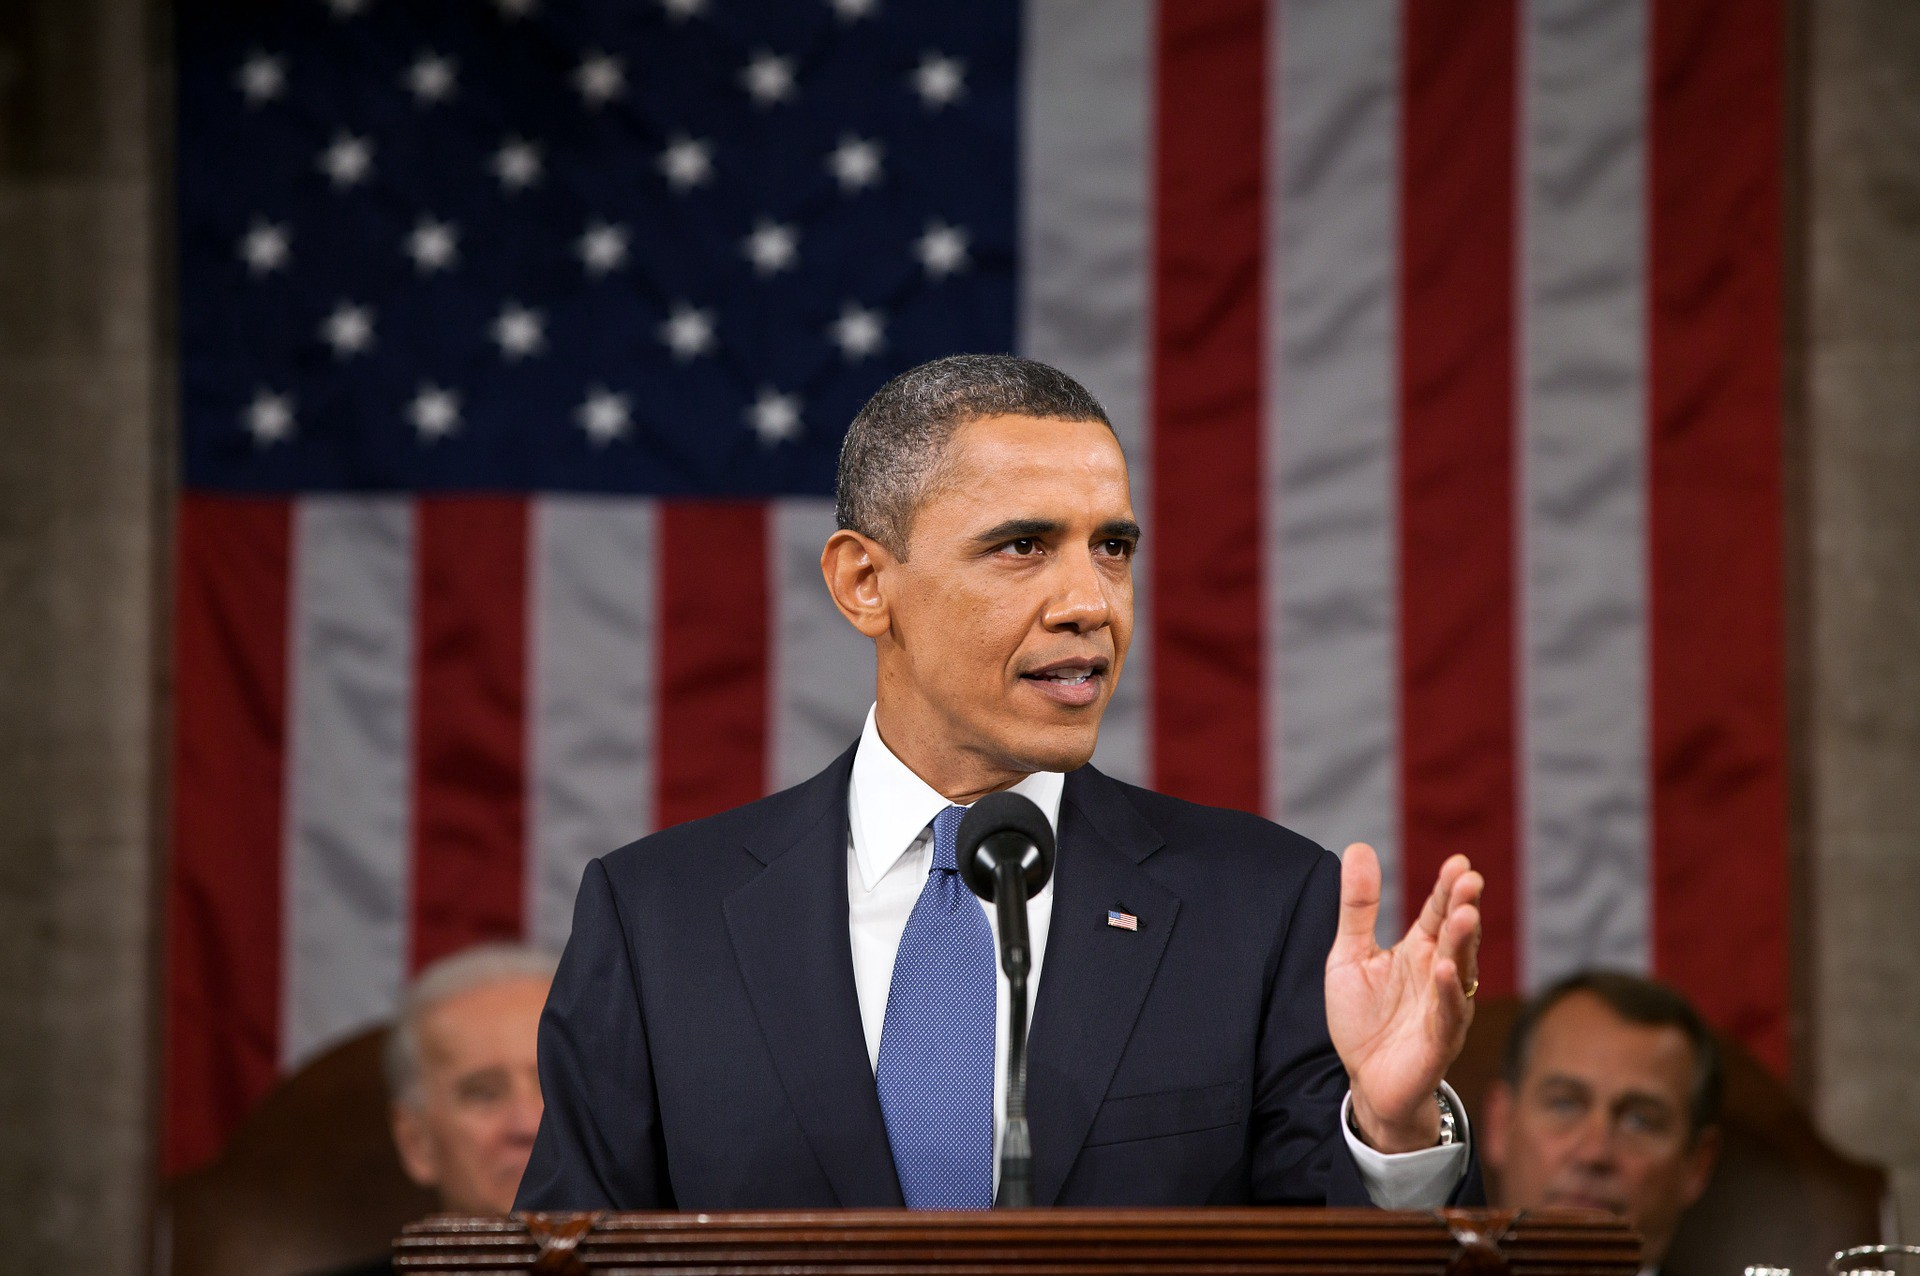 Former President Obama delivers a speech with the American flag in the background.